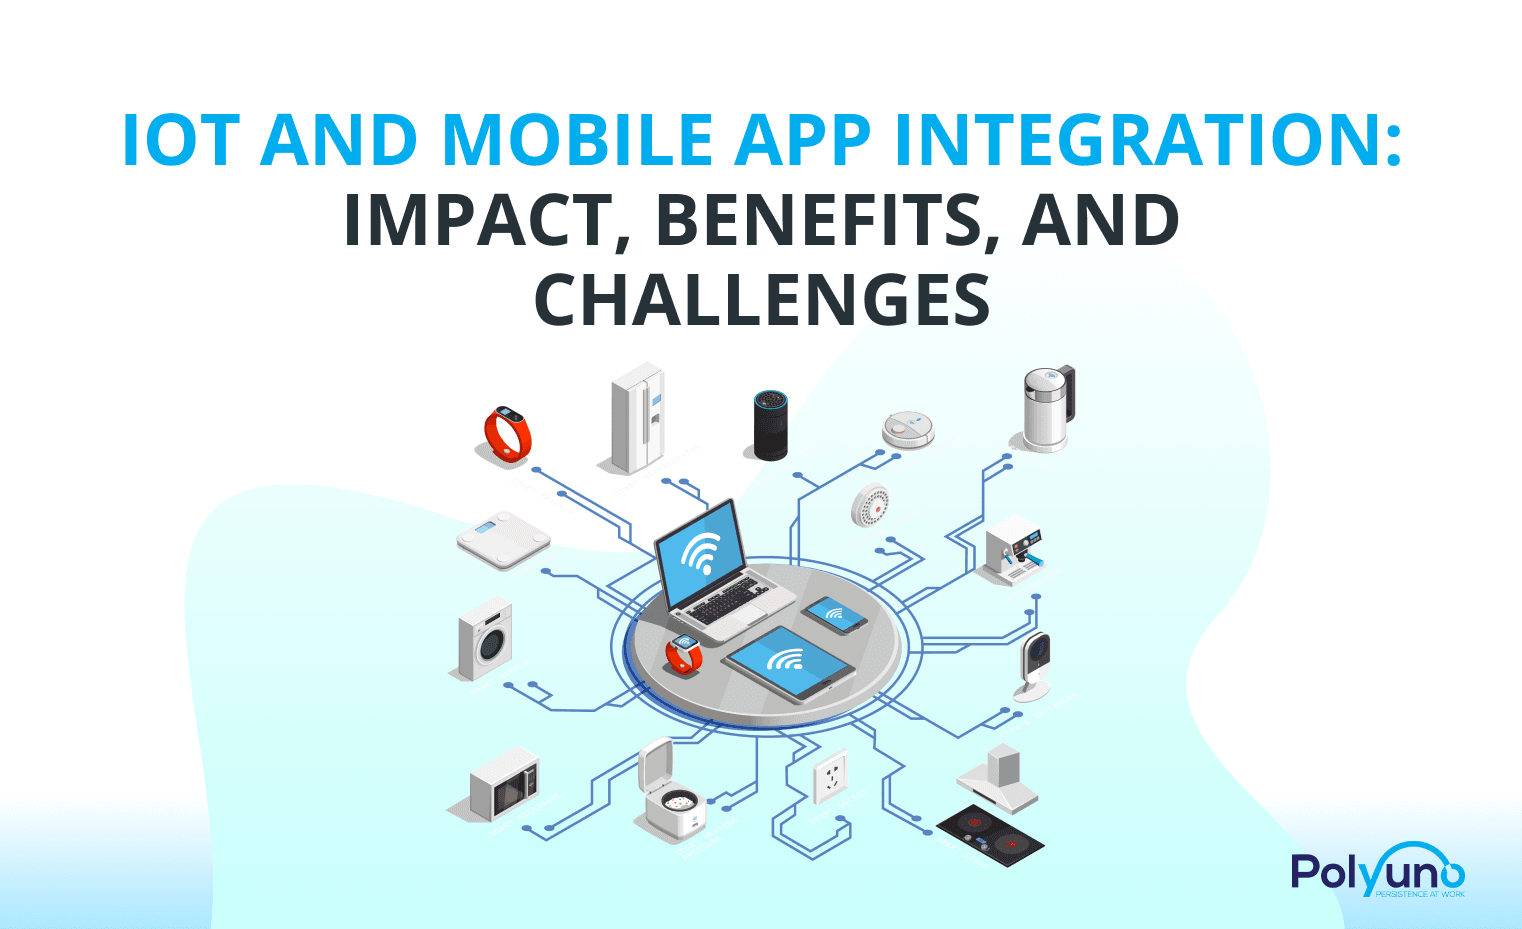 IoT And Mobile App Integration: Impact, Benefits, And Challenges